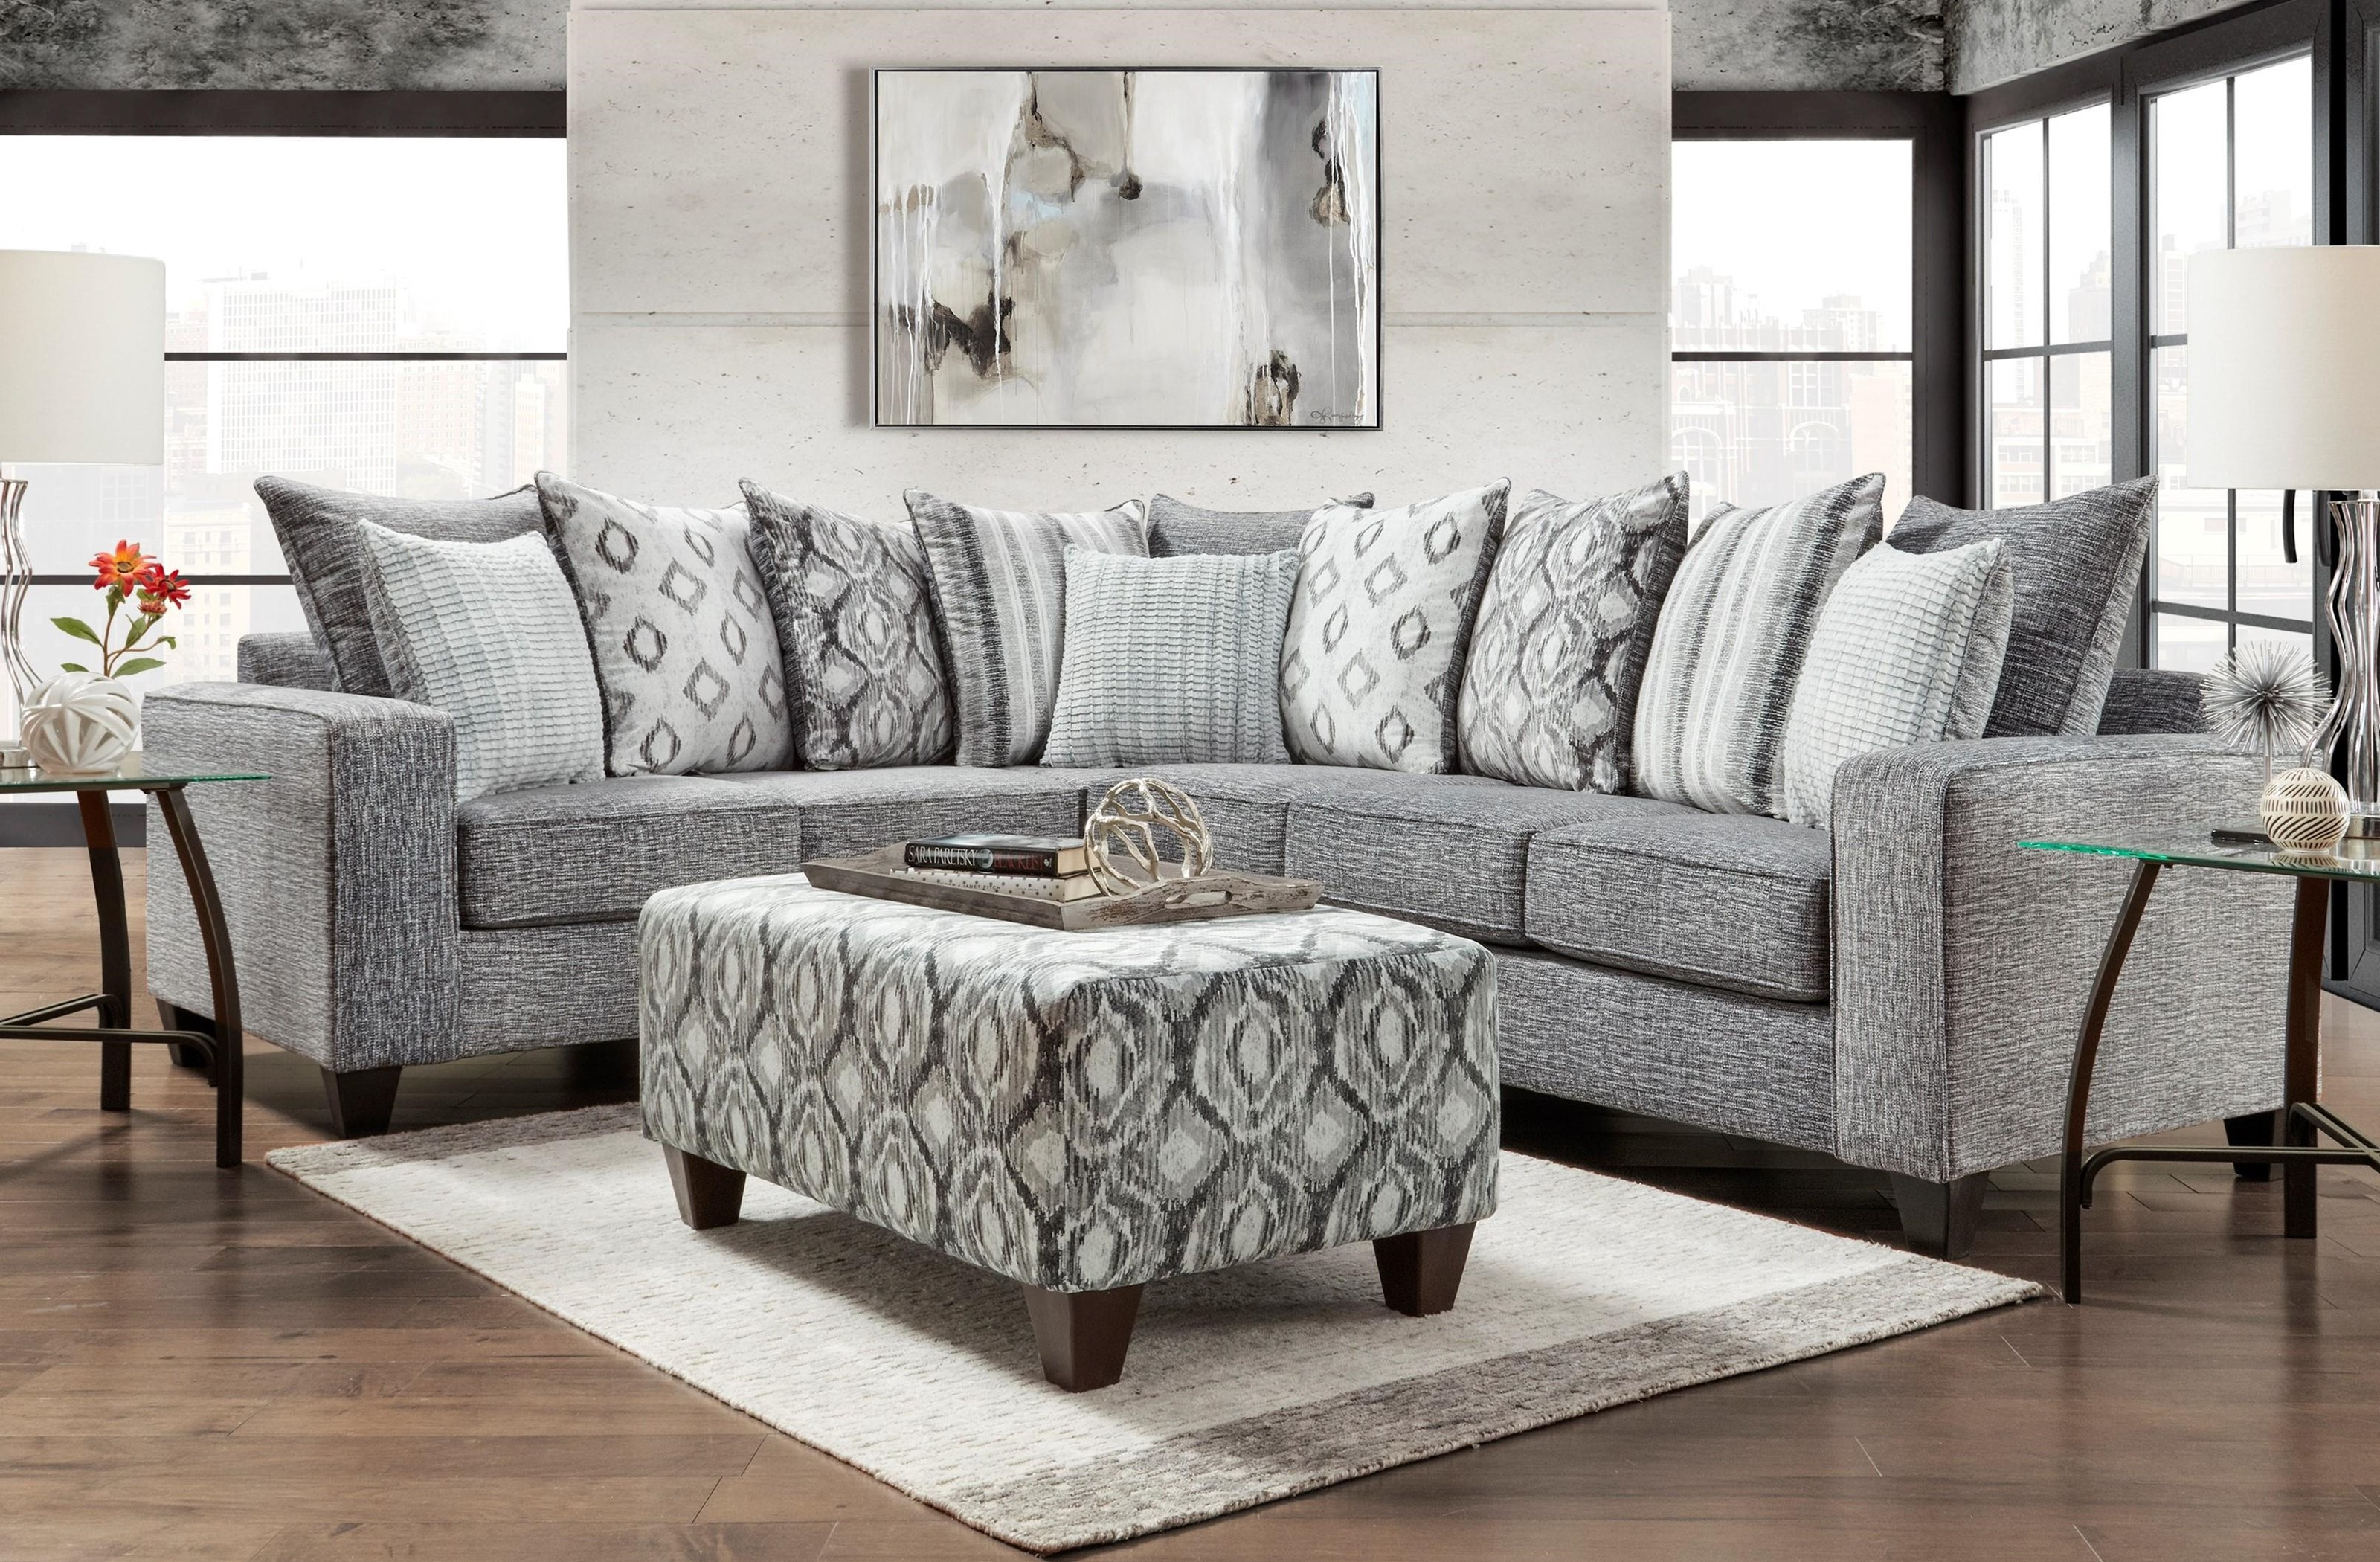 5850 Sectional Two Piece Sectional by Affordable Furniture at Furniture Fair - North Carolina